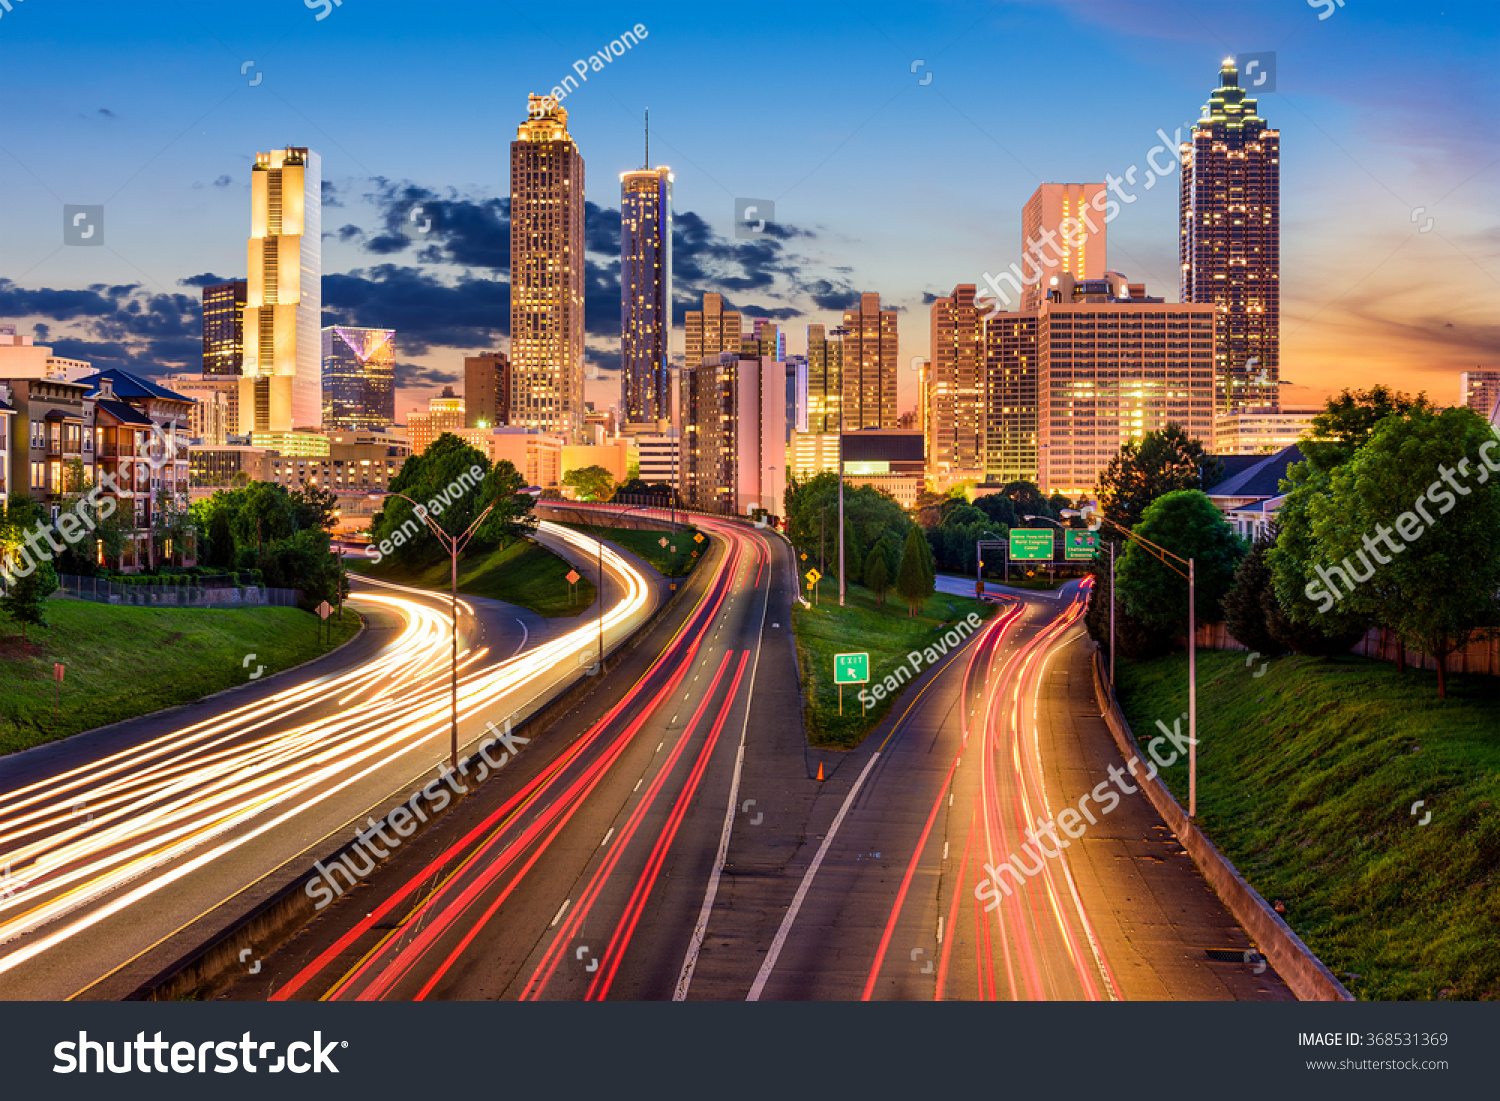 atlanta georgia usa downtown city skyline stock photo 368531369 shutterstock. Black Bedroom Furniture Sets. Home Design Ideas